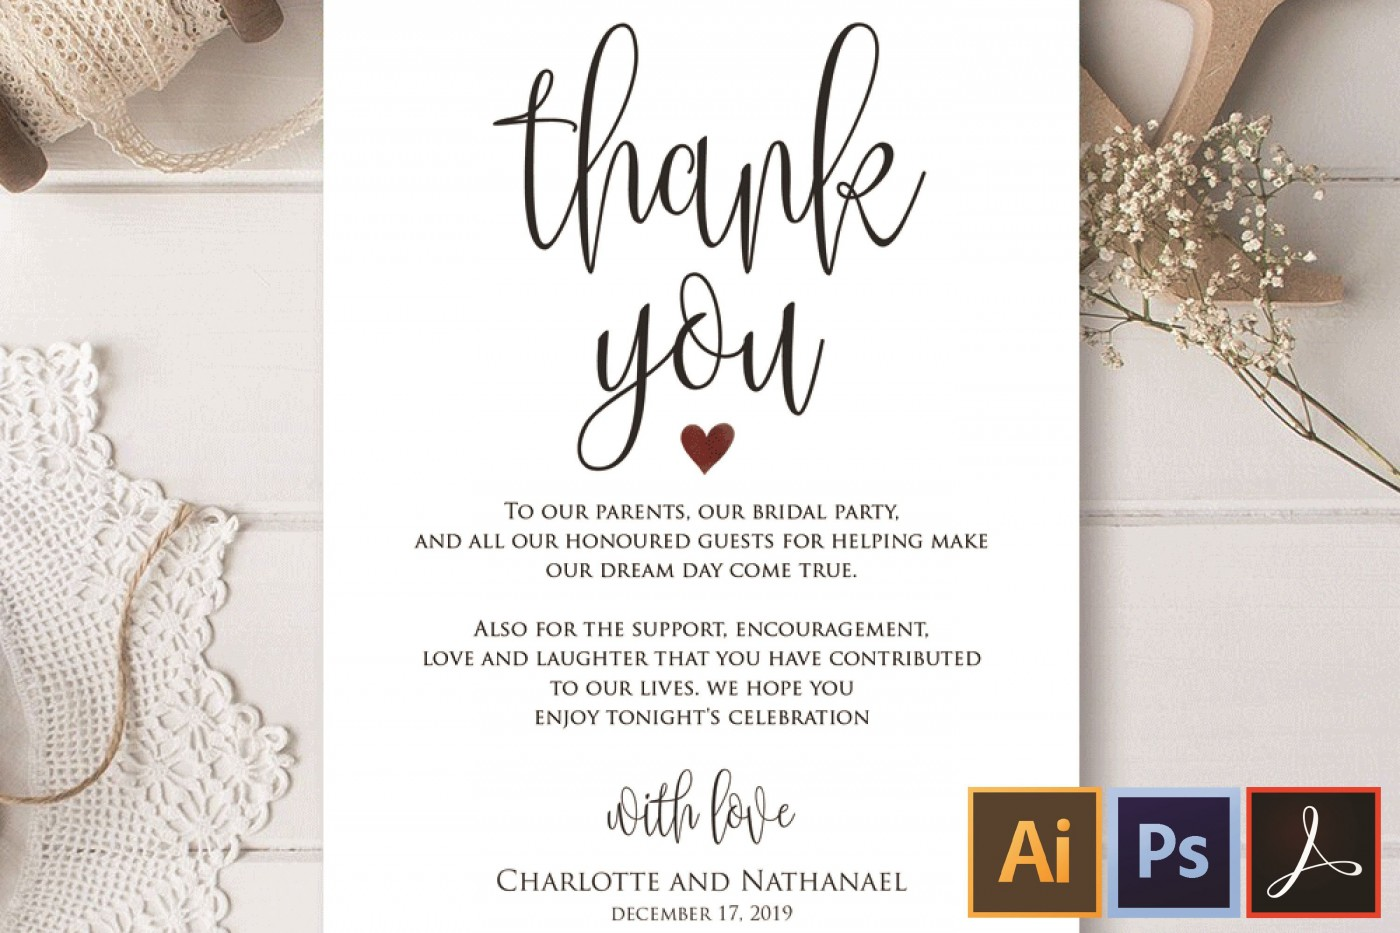 006 Magnificent Wedding Thank You Card Template Example  Photoshop Word Etsy1400